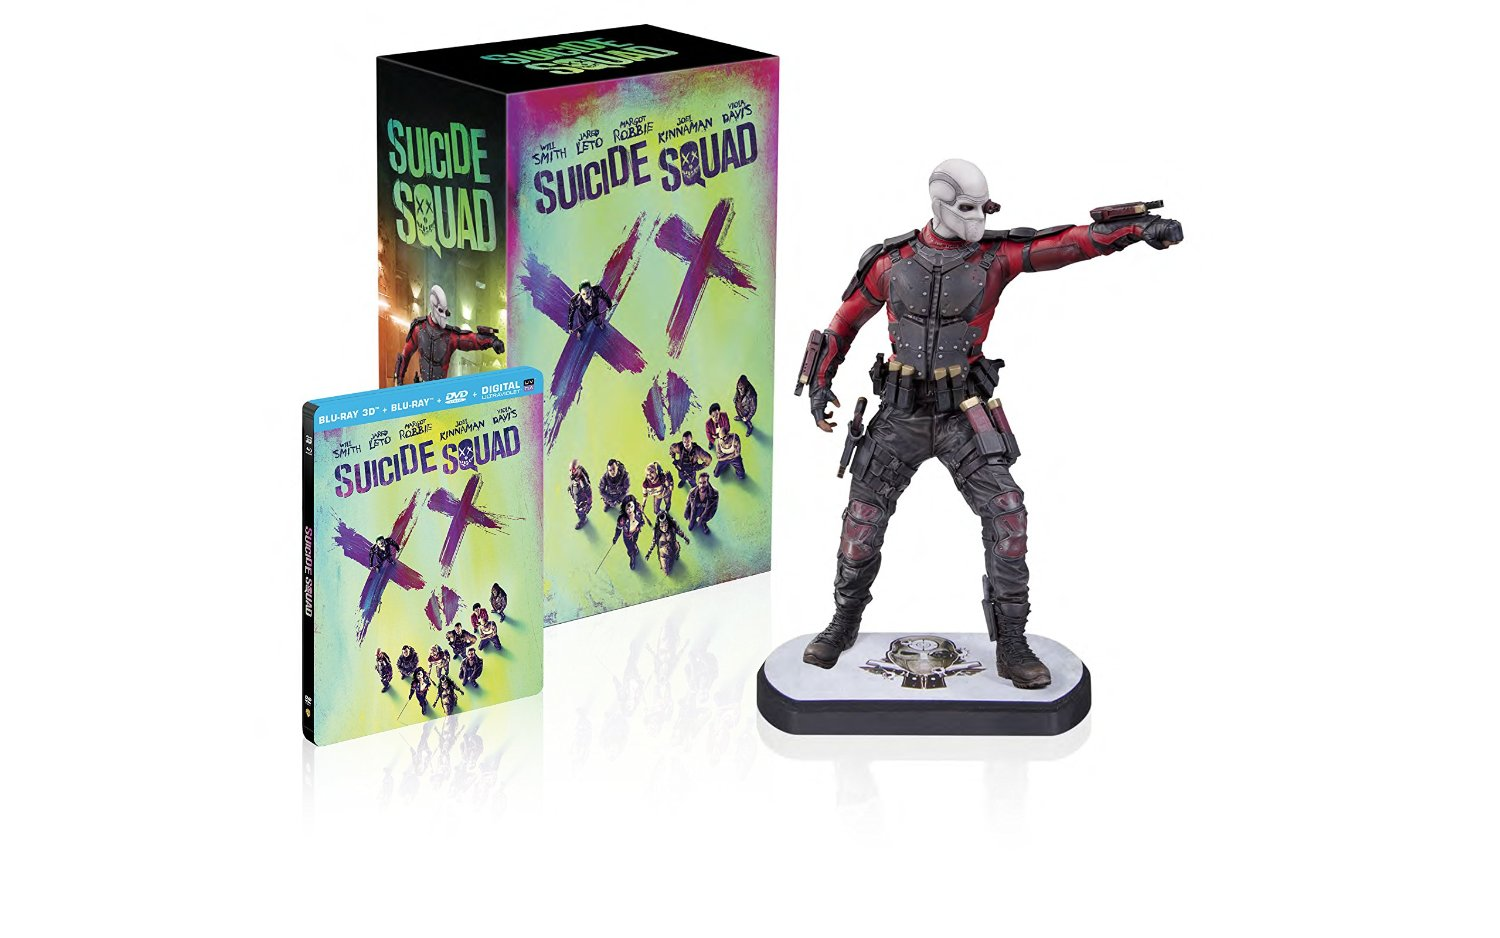 Suicide Squad steelbook collector 2